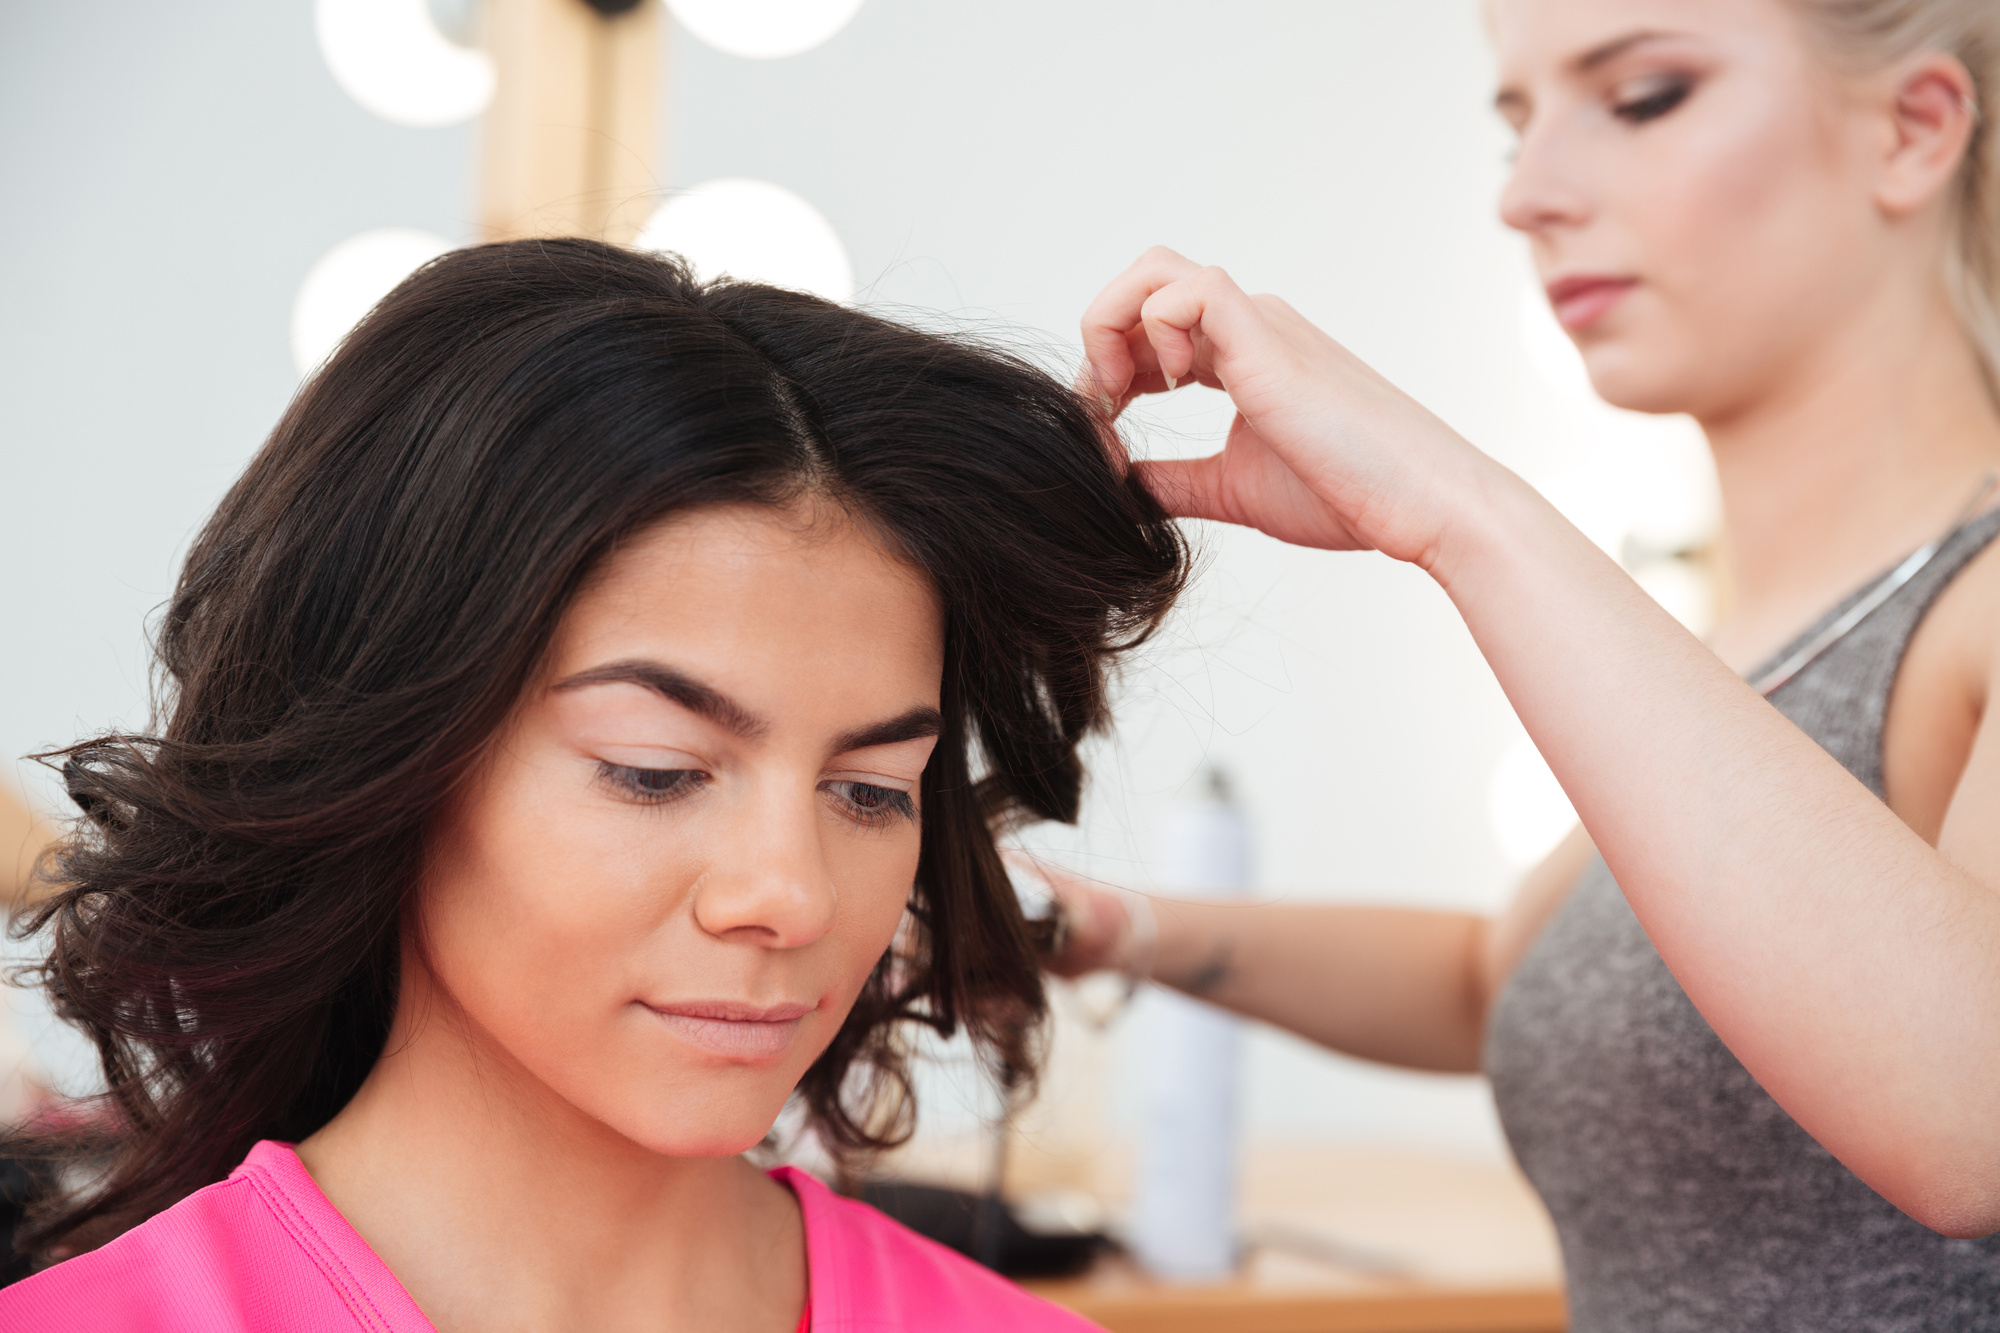 Finding the Right Hair Salon for You: 3 Tips for Choosing Where to Get Your Trim